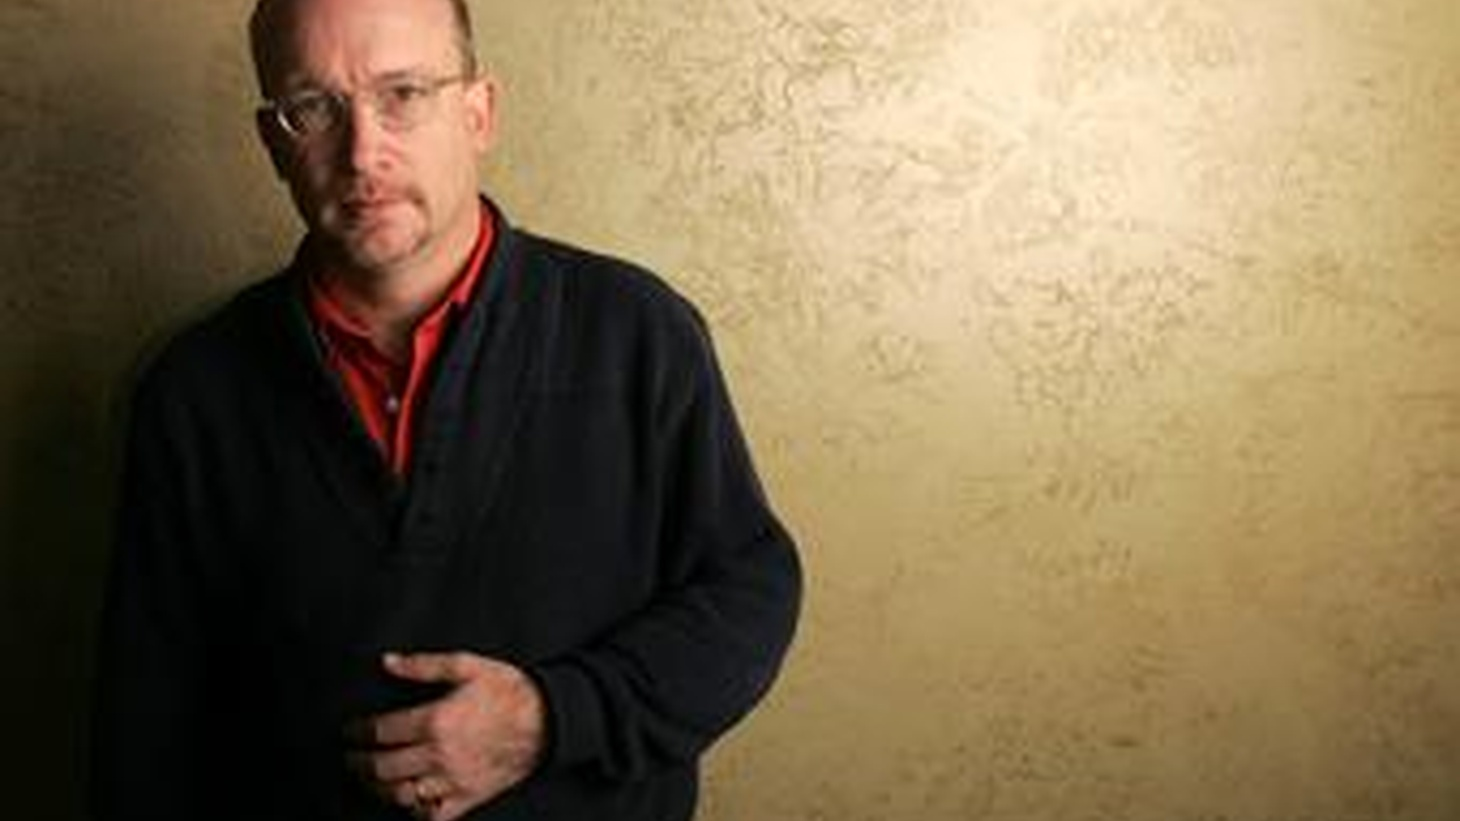 WEB EXCLUSIVE: 2008 has been quite a year for director Alex Gibney (Enron: The Smartest Guys in the Room). Two documentaries he was involved with were nominated for Oscars, and his film, Taxi to the Dark Side, won. His new doc, Gonzo, takes us into the heart and soul of Hunter S. Thompson.